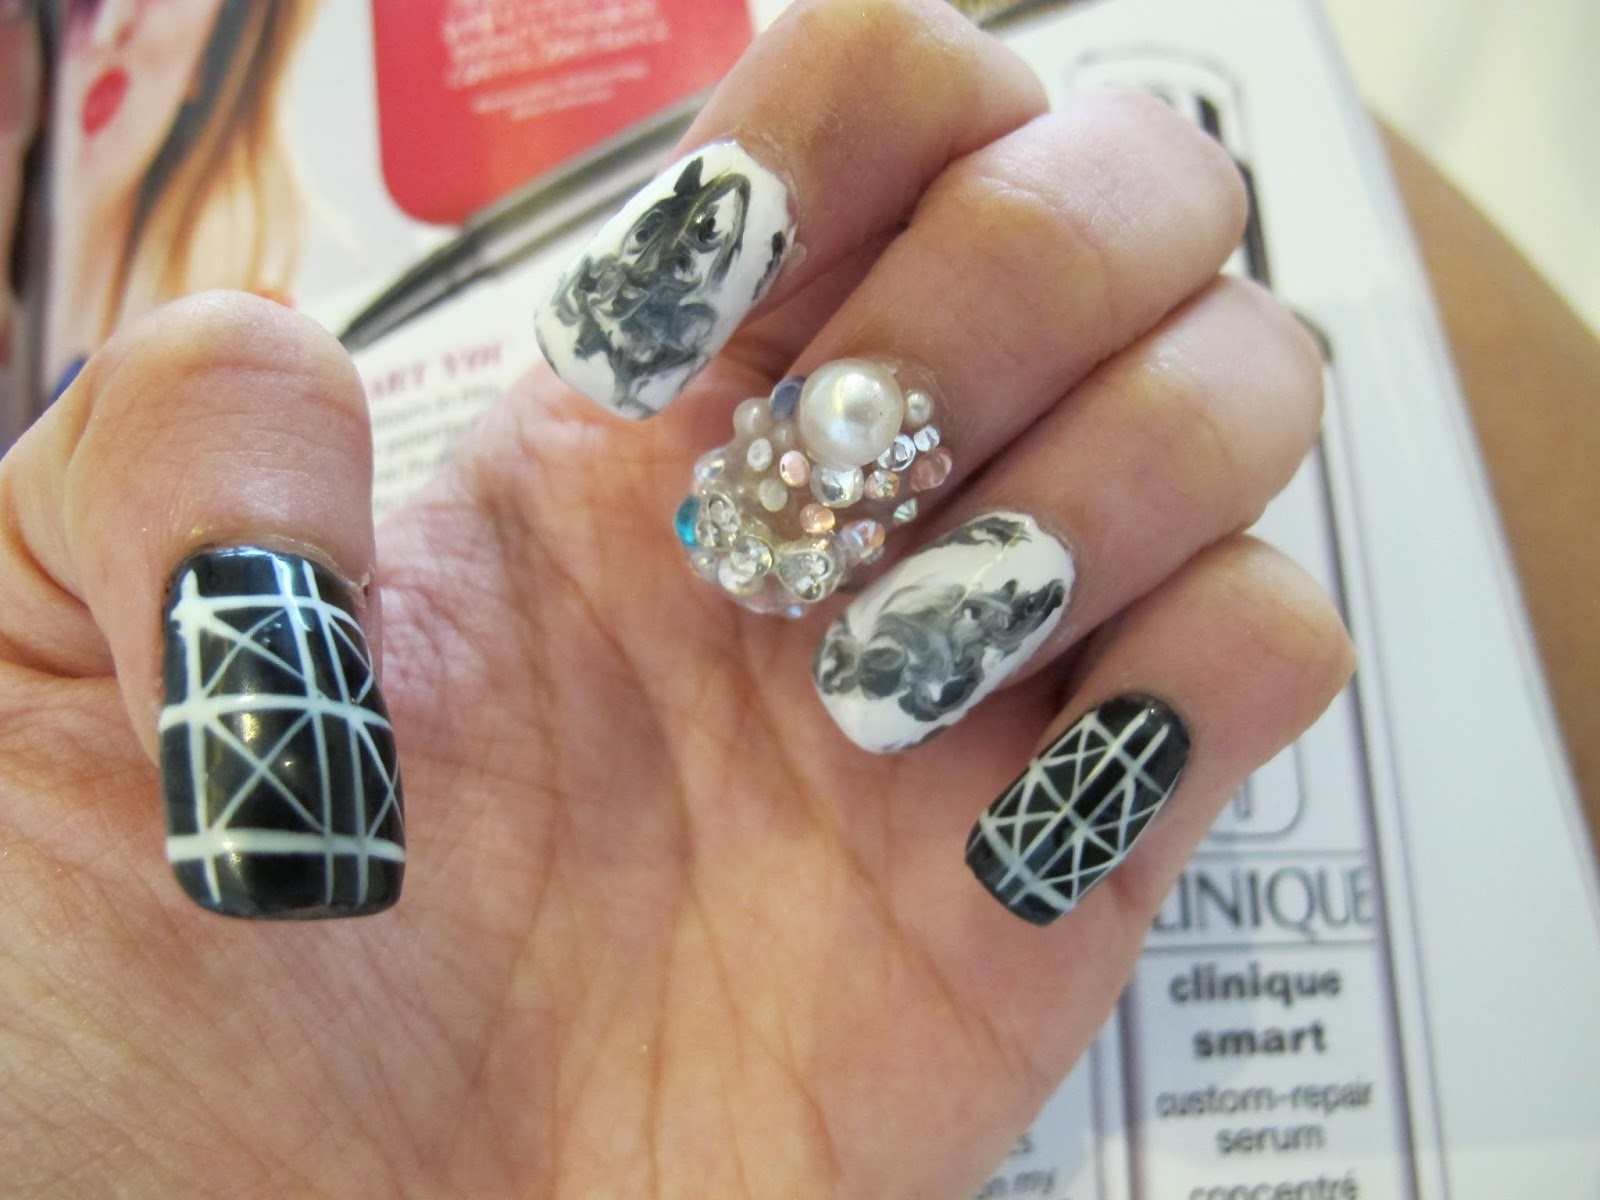 theperfectmonologue: StageLook Nails: MONOCHROME!